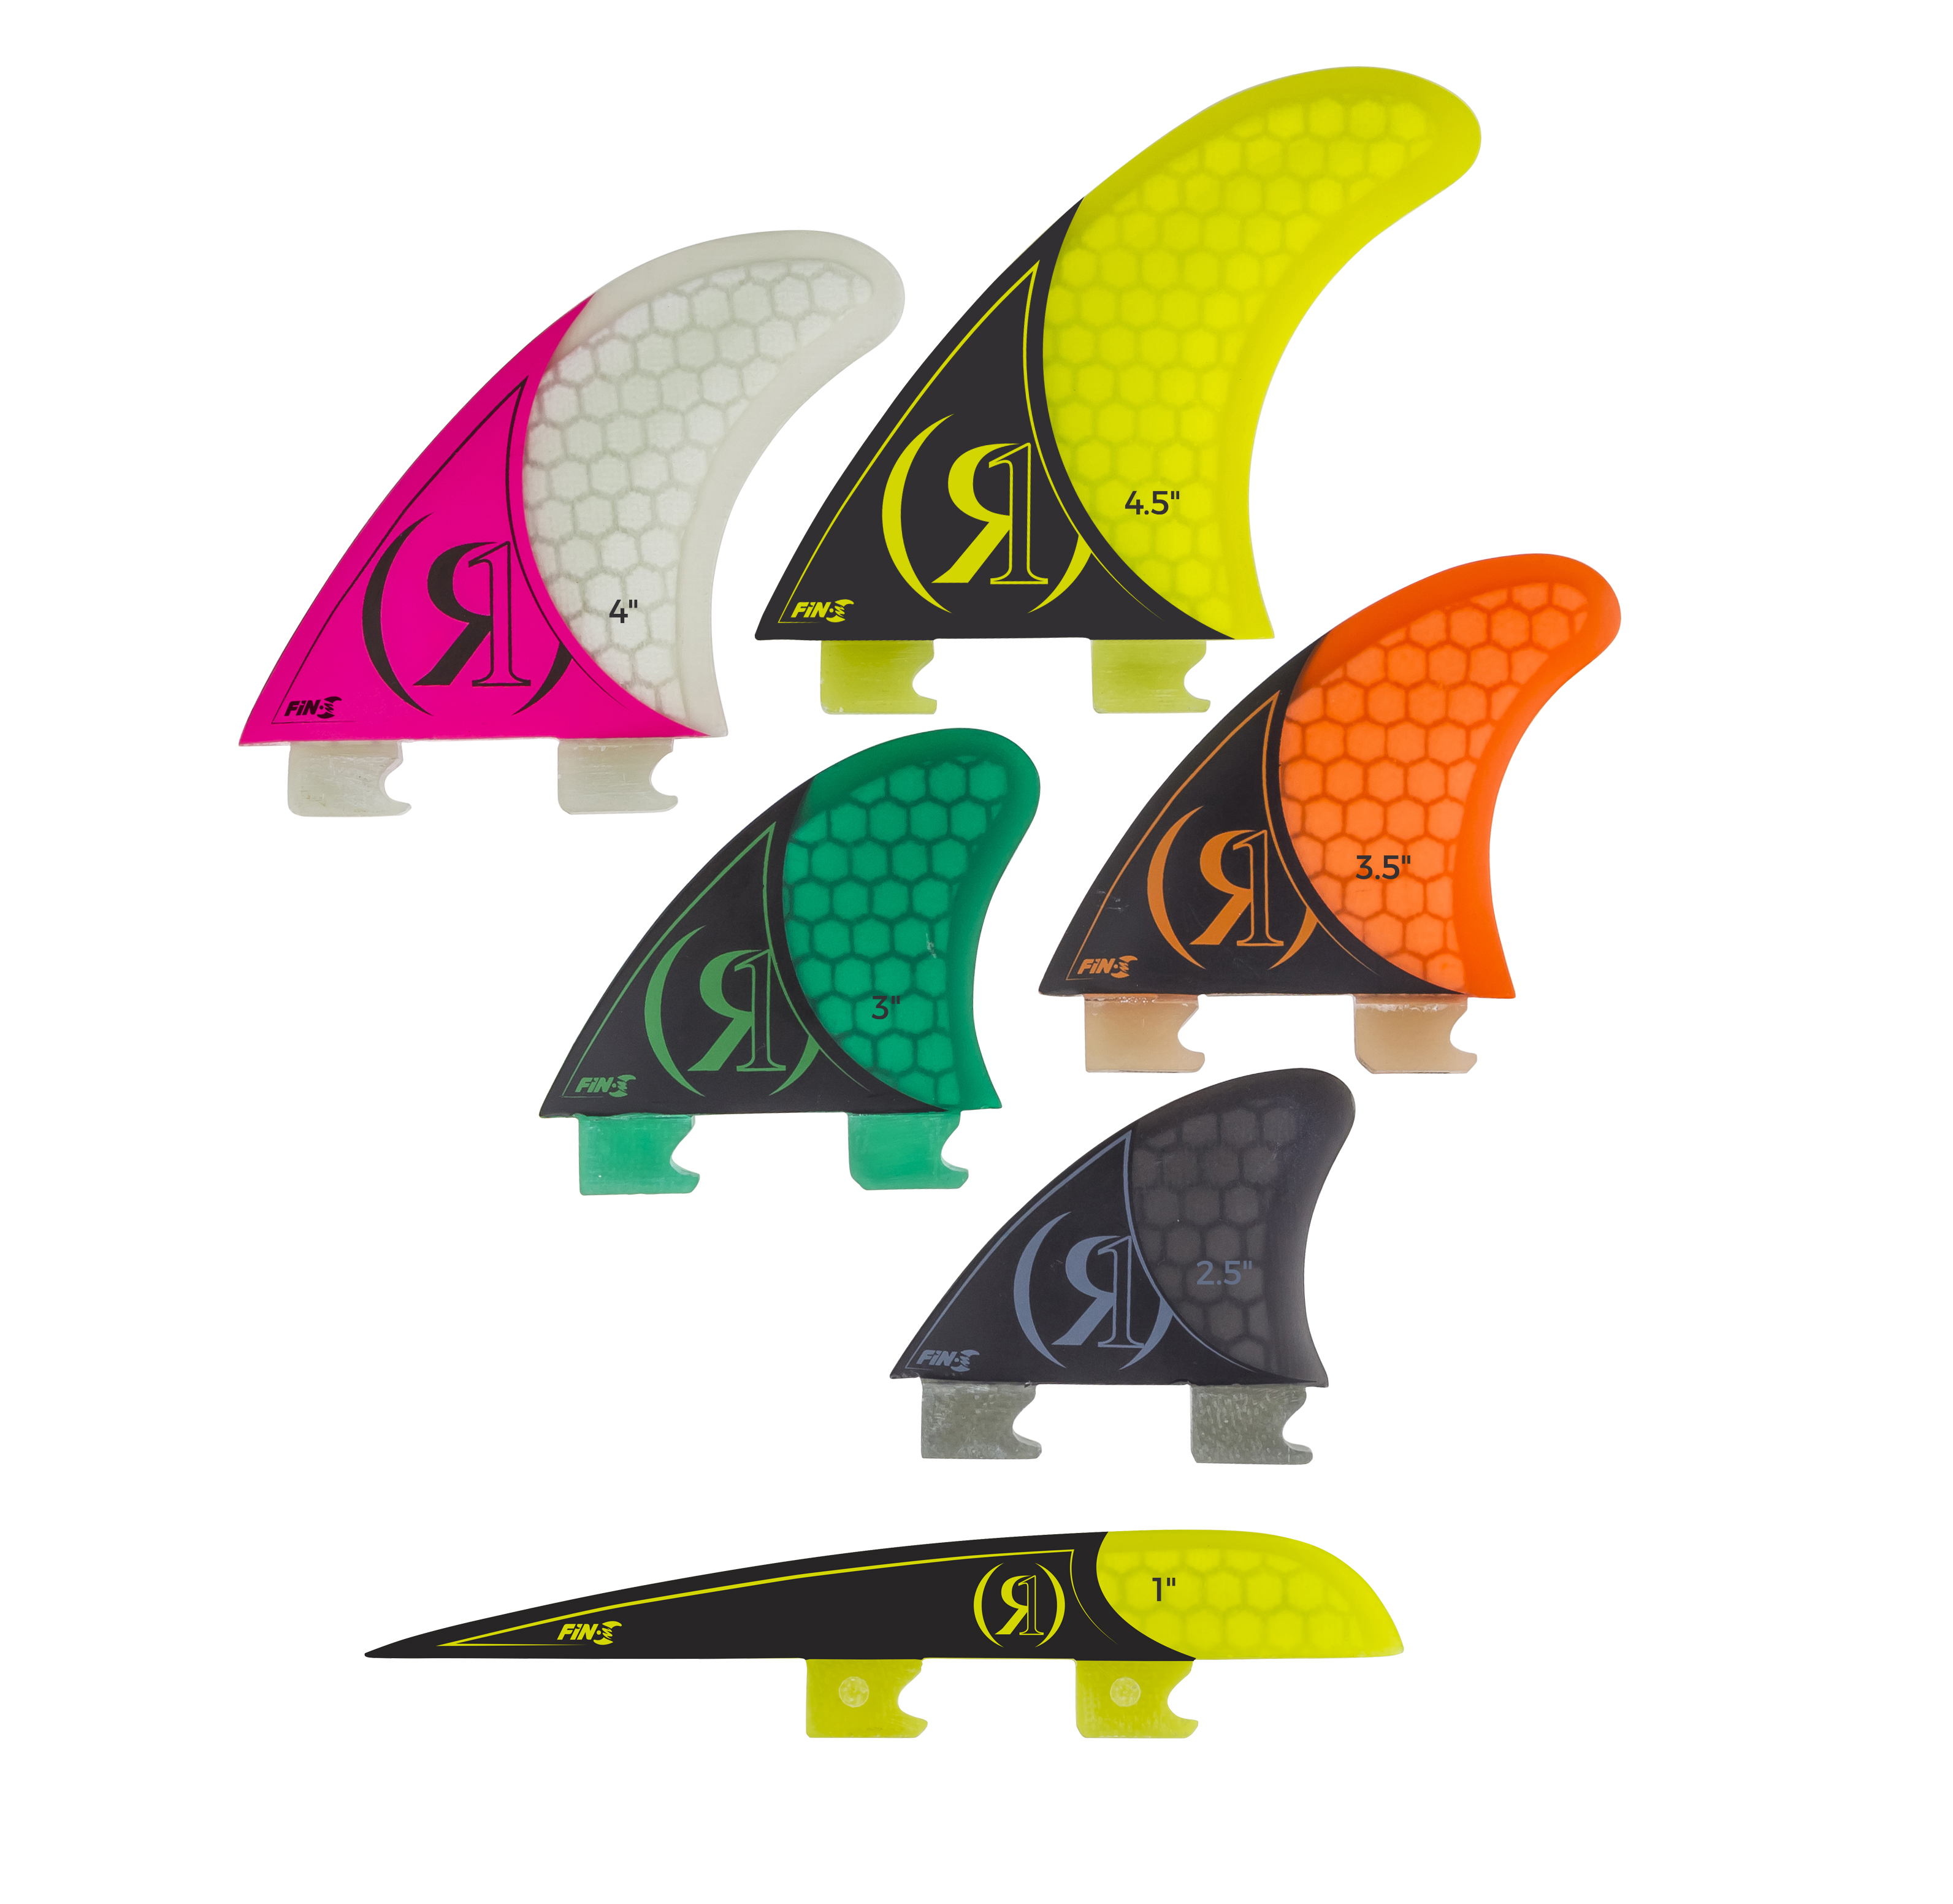 4.5'' - FIN-S 2.0 TOOL-LESS FIBERGLASS - RIGHT SURF FIN RONIX 2018